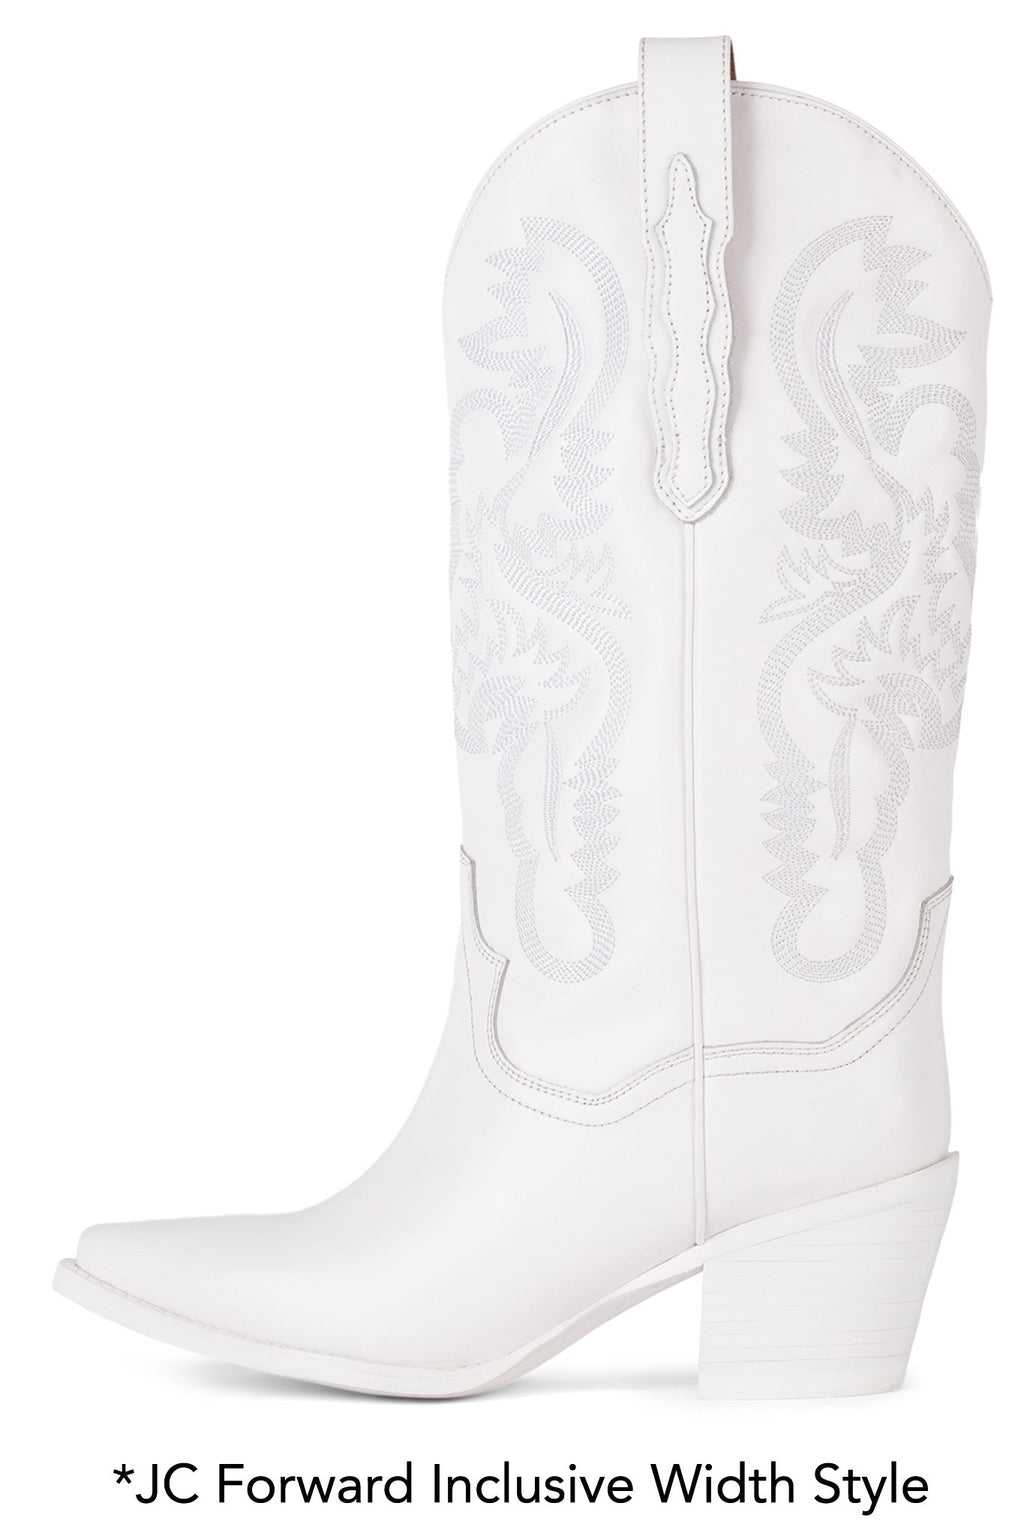 AMITY Mid-Calf Boot STRATEGY White Combo 5W